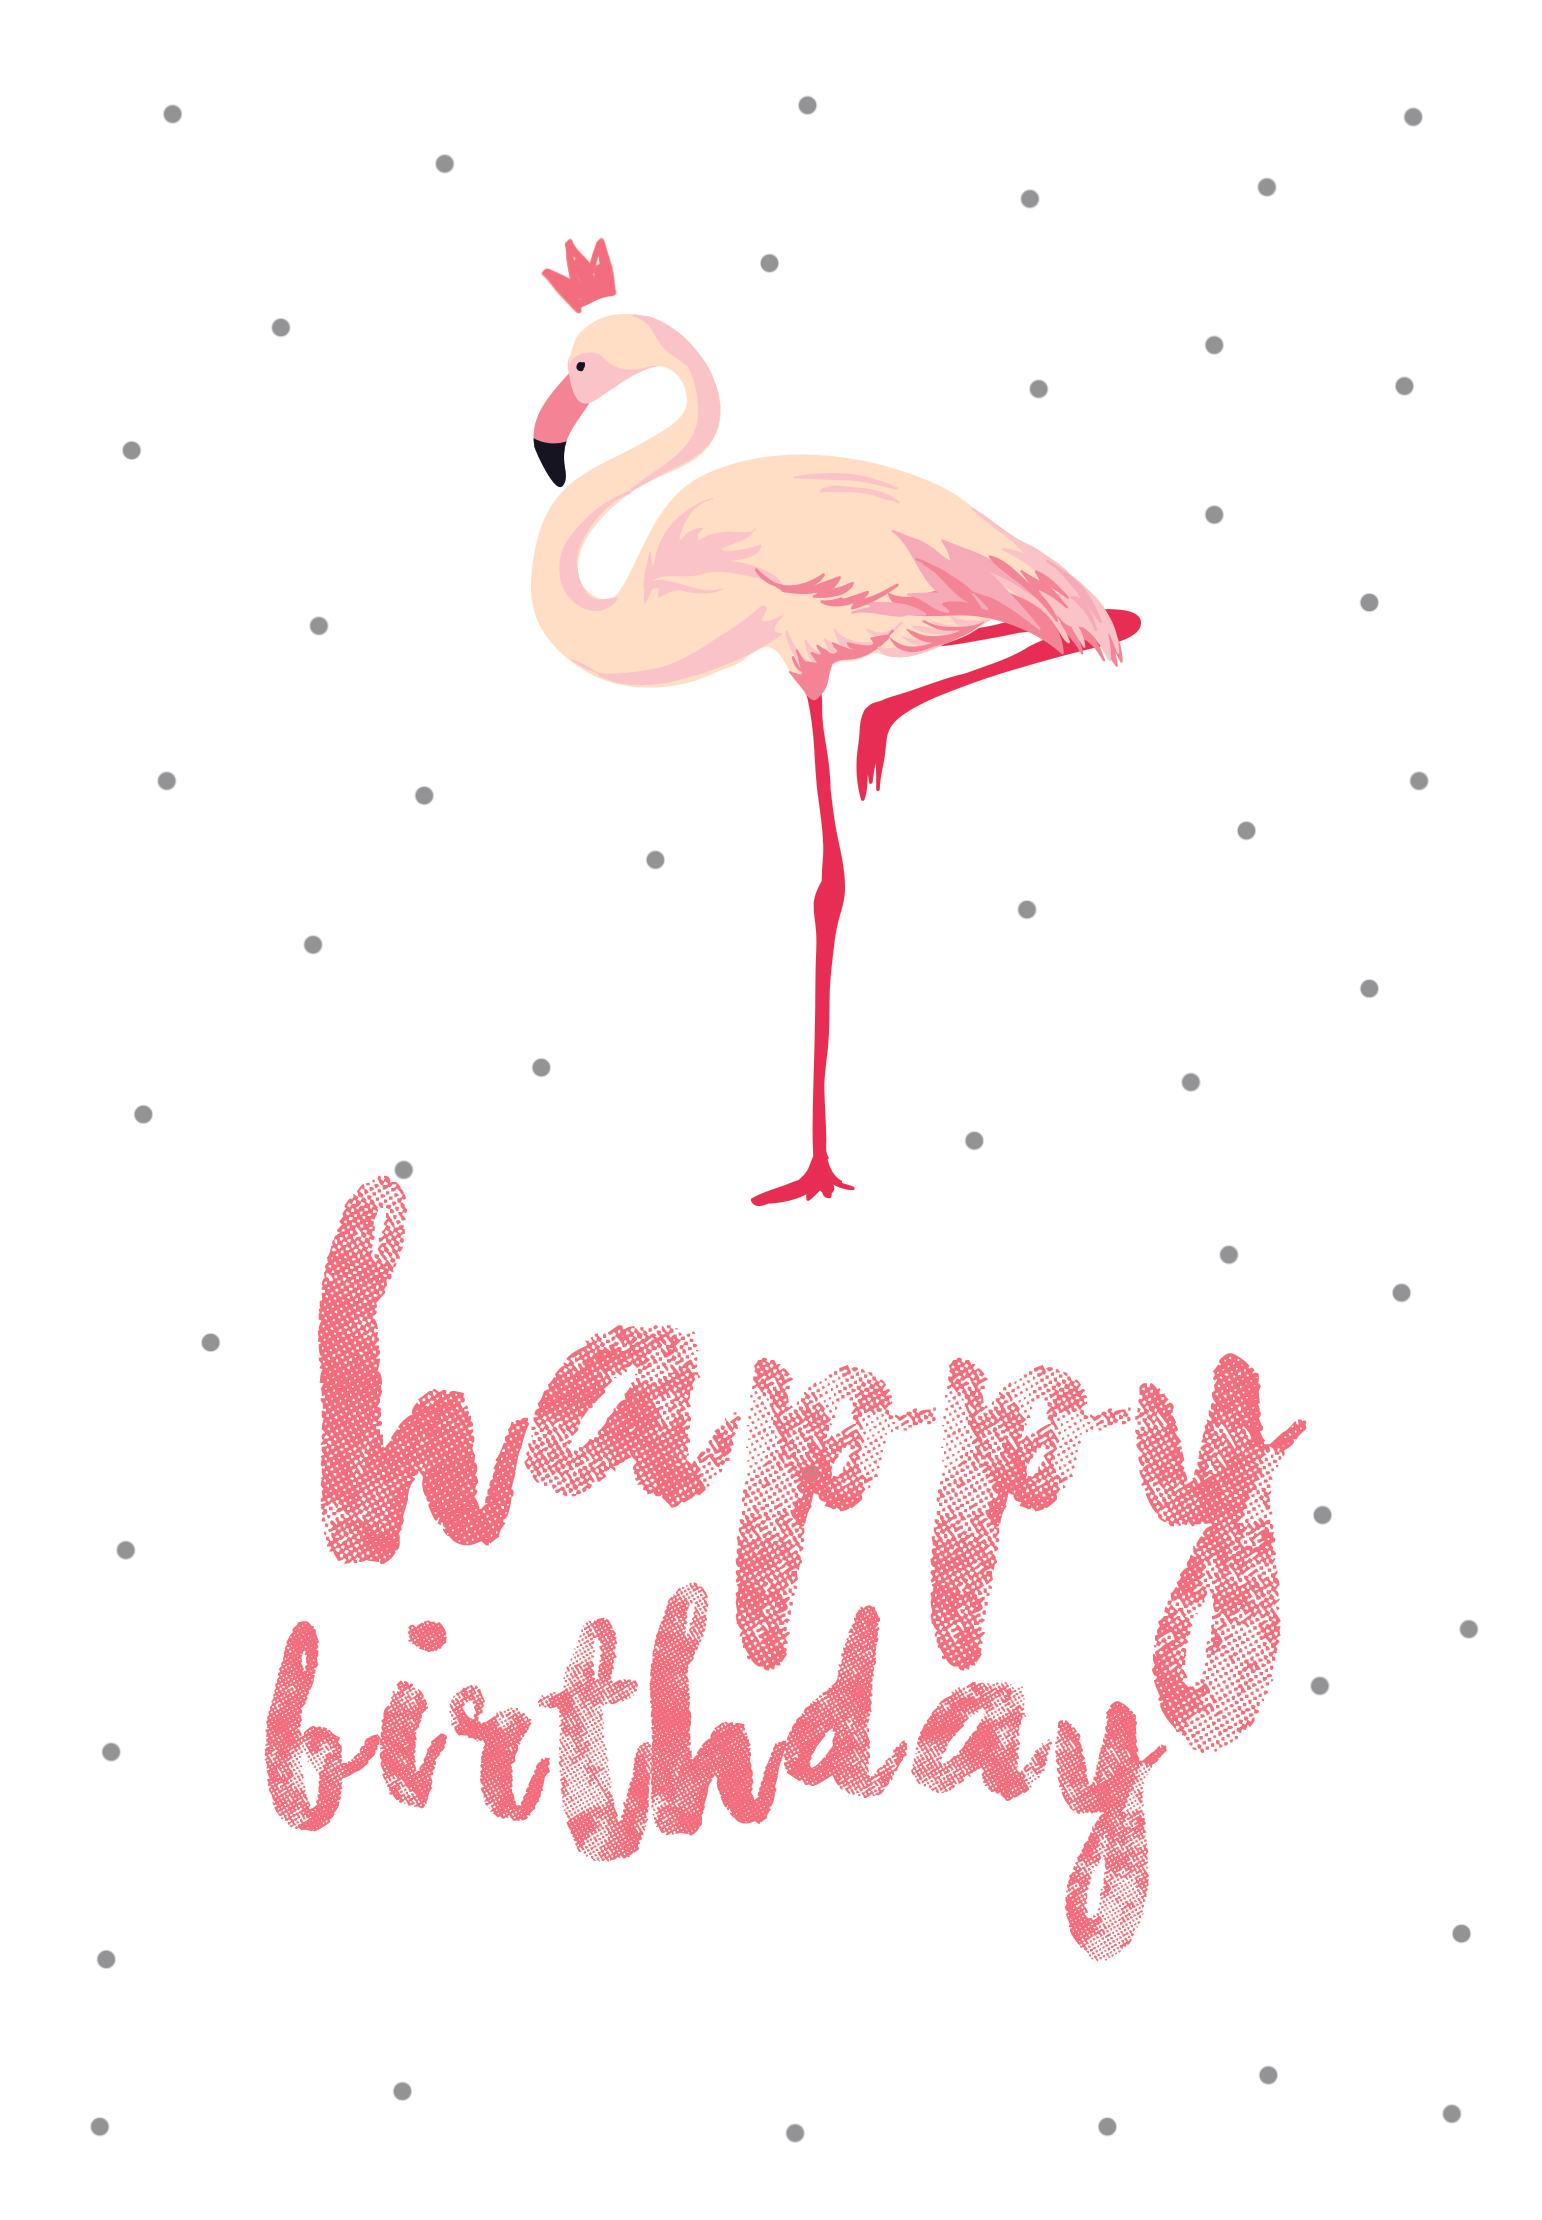 Flamingo birthday free printable birthday card greetings island flamingo birthday free birthday card greetings island kristyandbryce Gallery